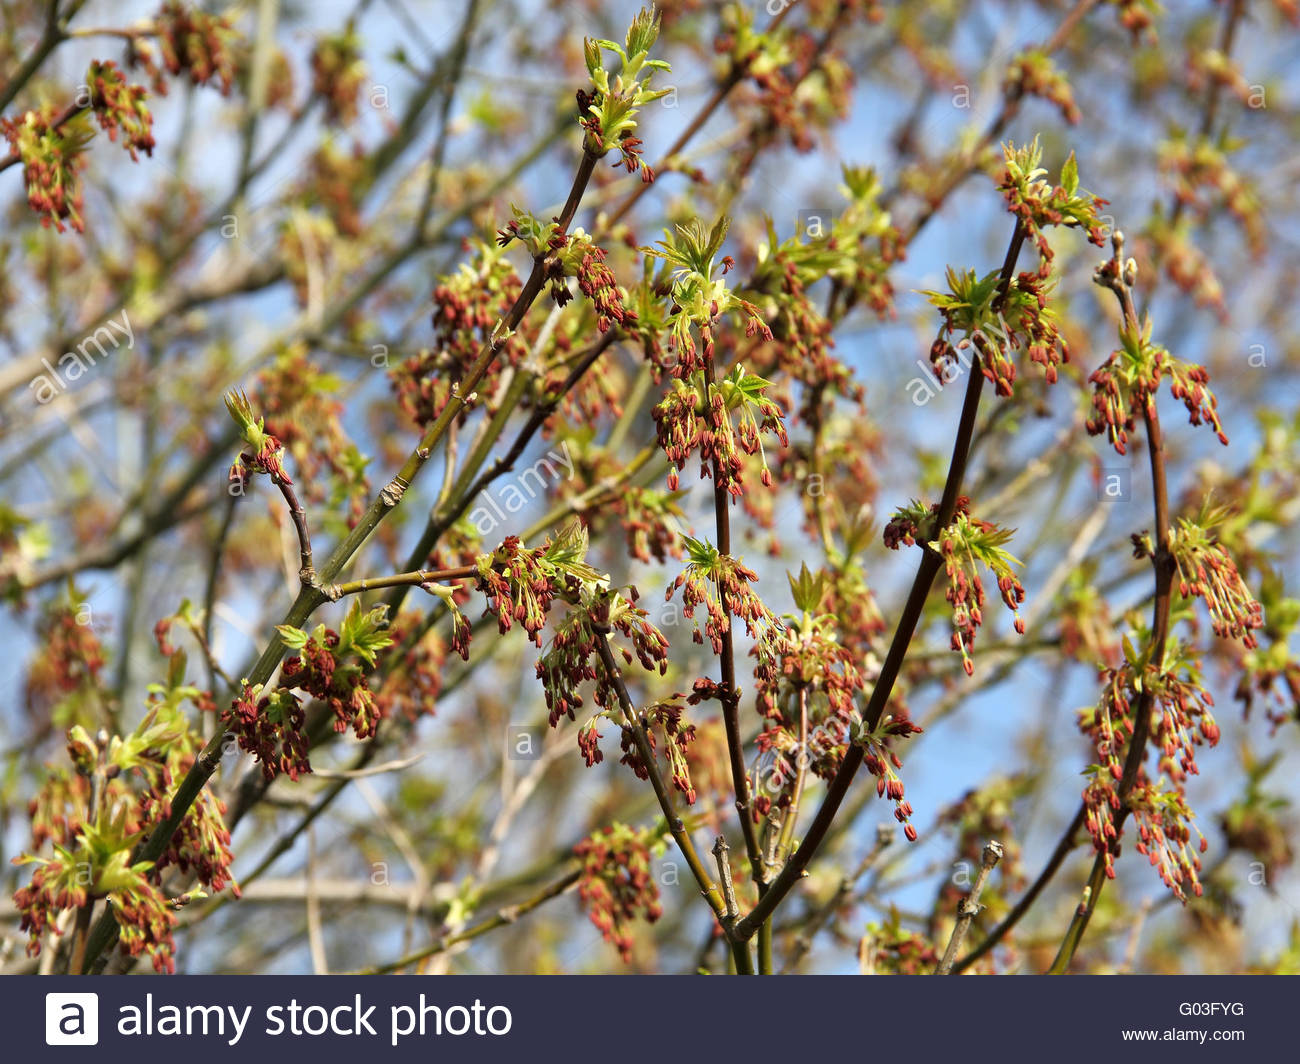 Flowering branches of the Maple Ash, Acer negundo - Stock Image